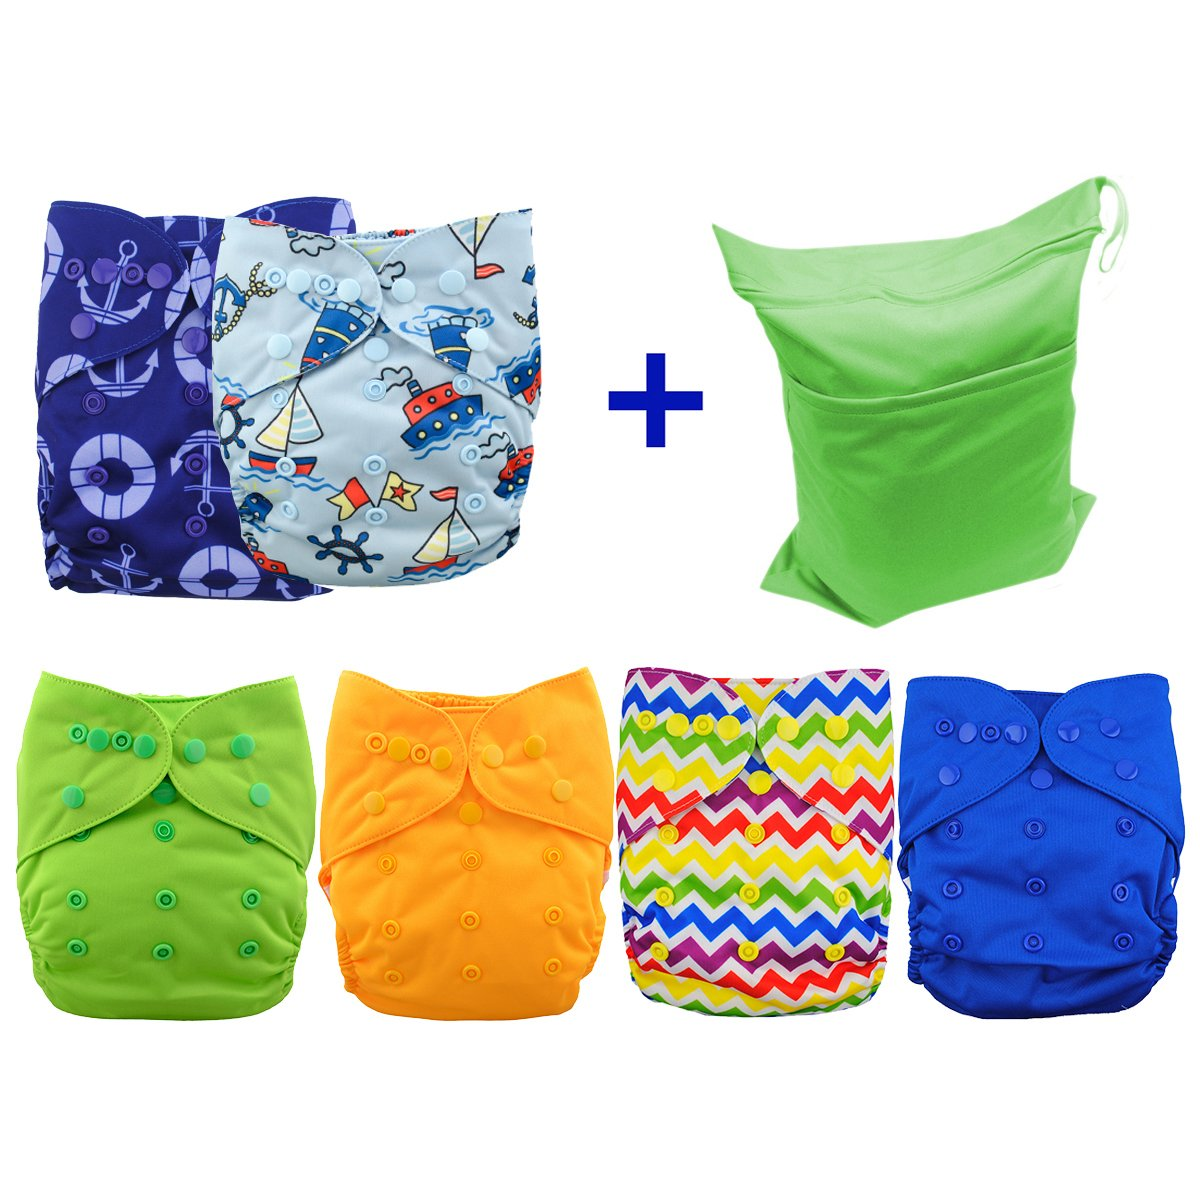 Babygoal Cloth Diaper Covers for Girls,Baby Adjustable Reusable Covers for Fitted Diapers and Prefolds, Baby Girl Clothes, 6pcs Covers+ One Free Wet Bag 6DCF01-CA